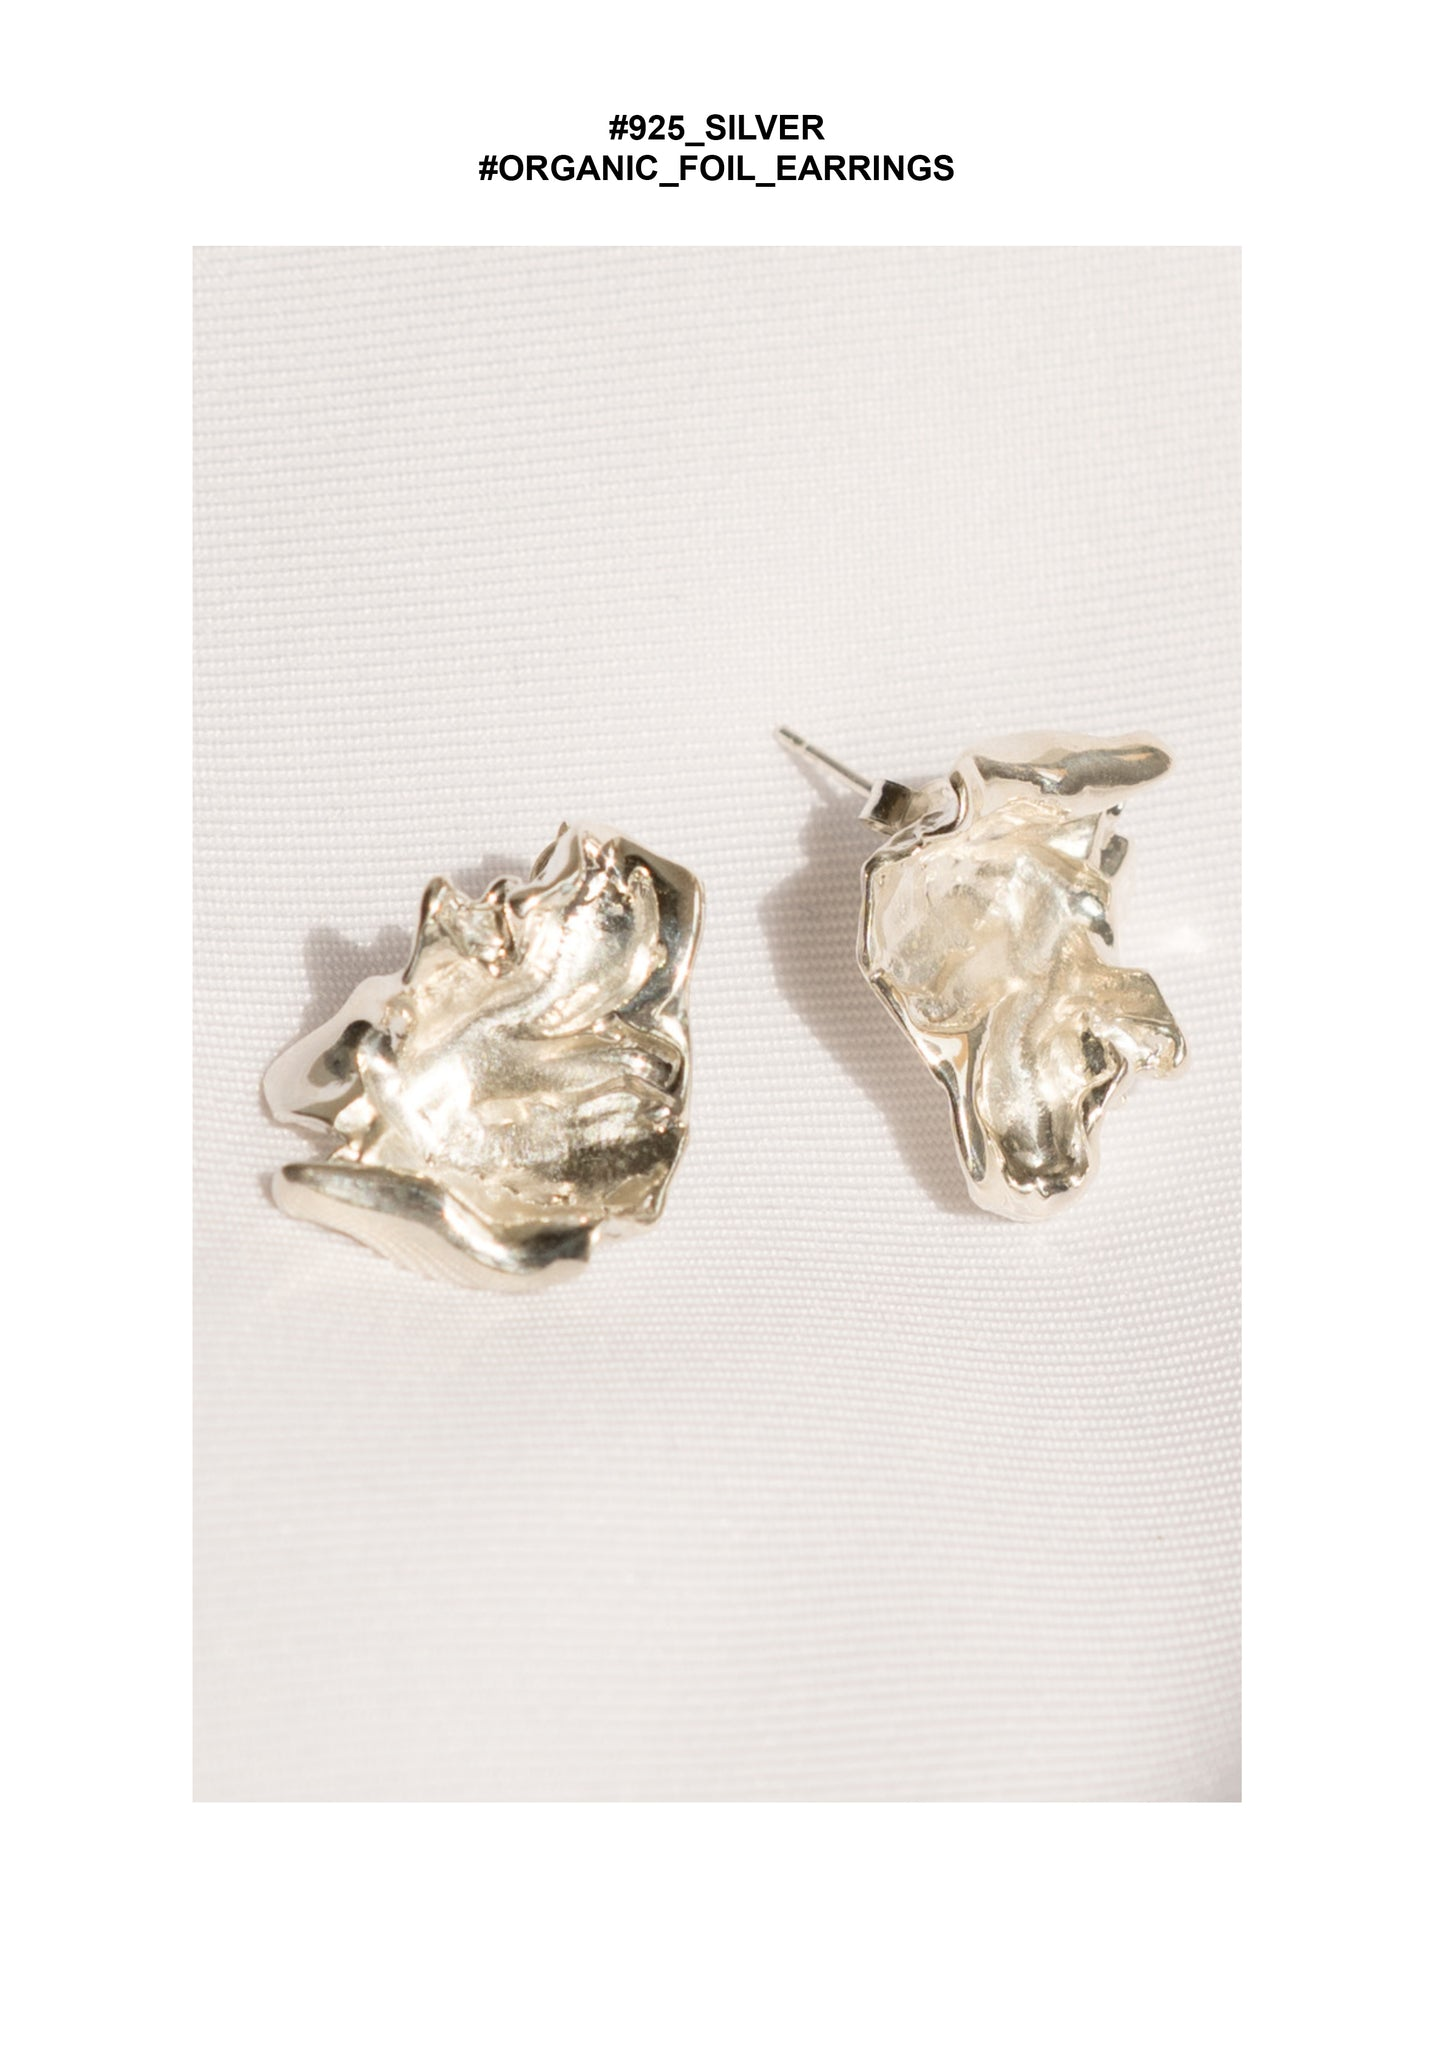 925 Silver Organic Foil Earrings - whoami